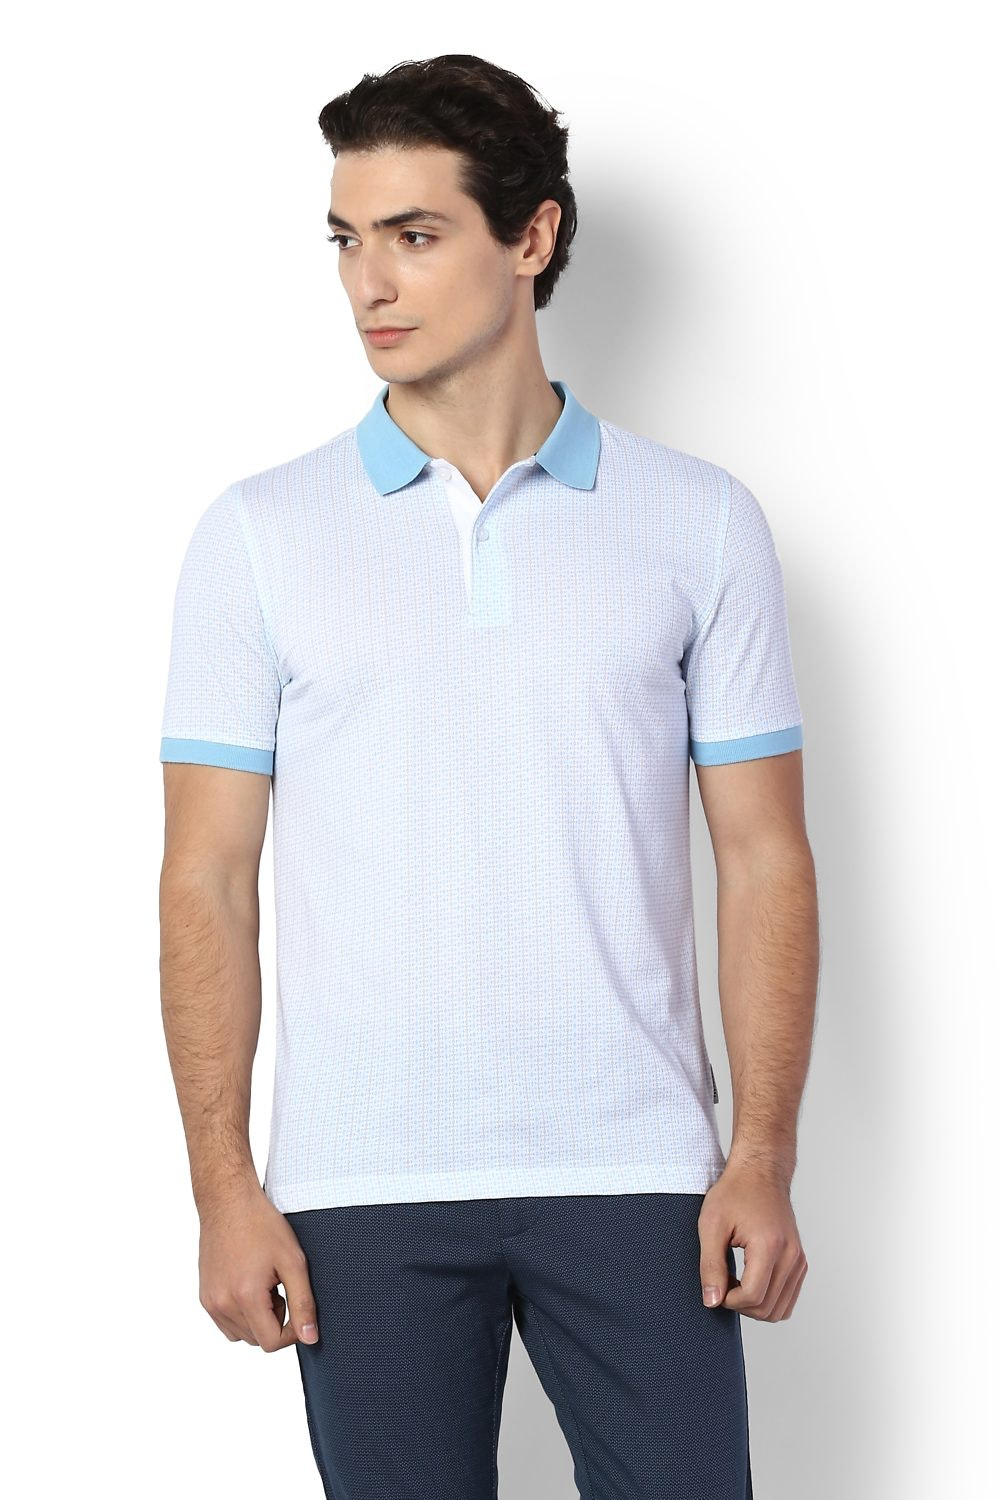 217c583ee8fbe Buy Van Heusen Men s T Shirt - Buy T Shirts Online